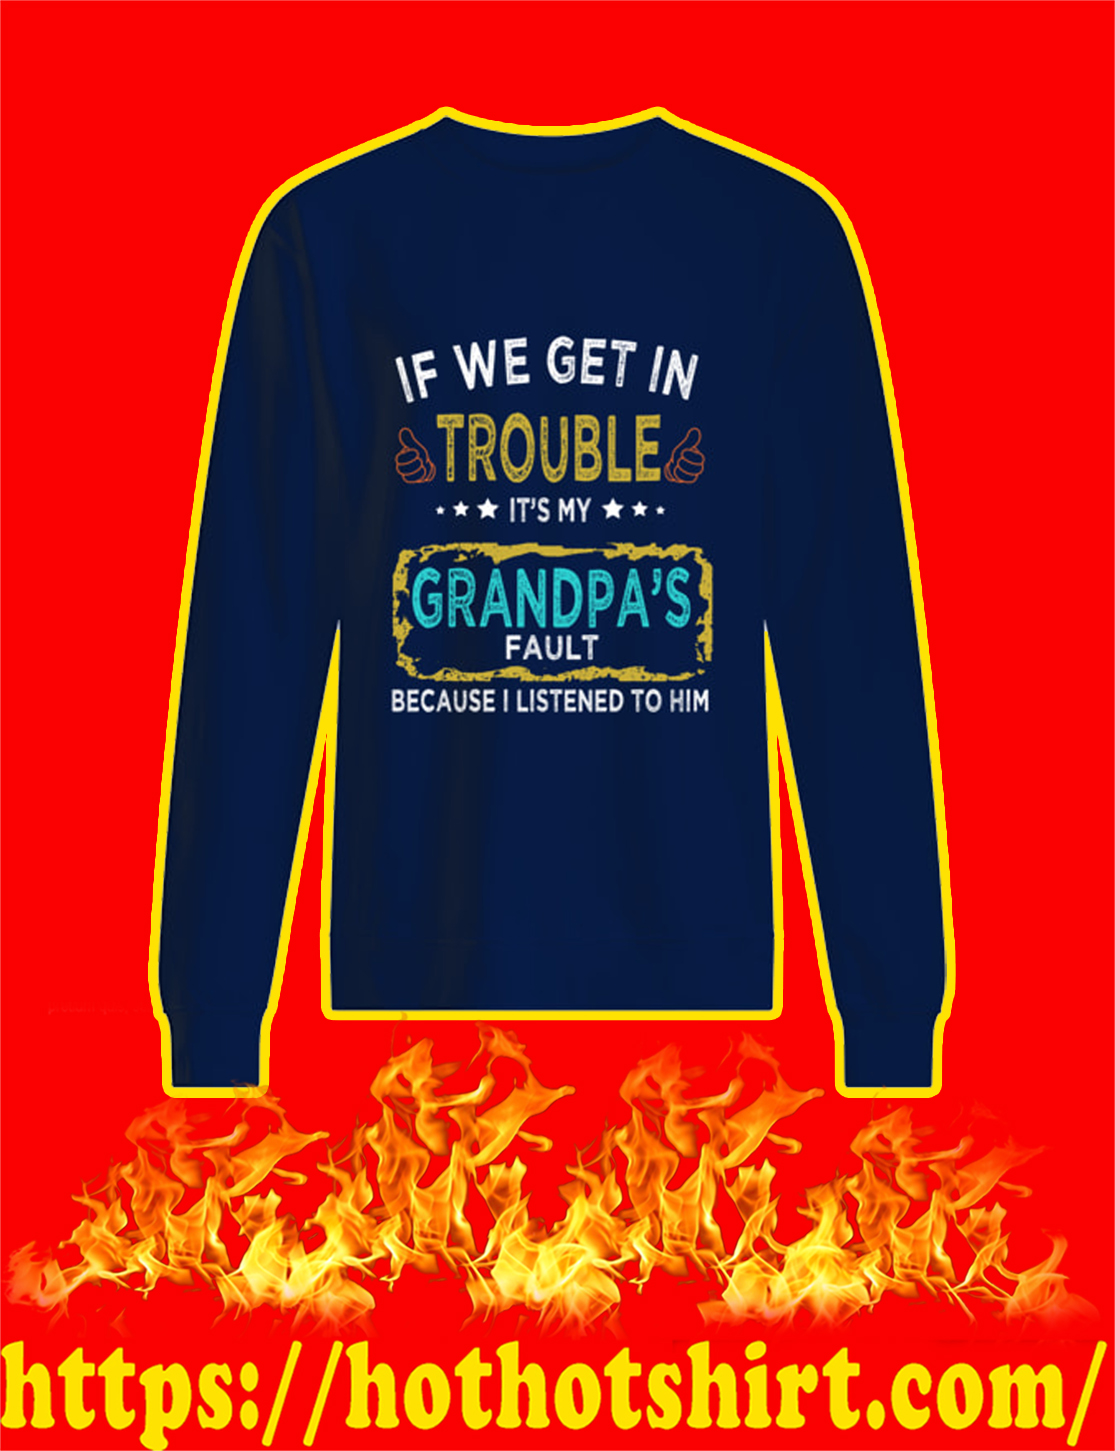 If We Get In Trouble It's My Grandpa's Fault Because I Listened To Him sweatshirt